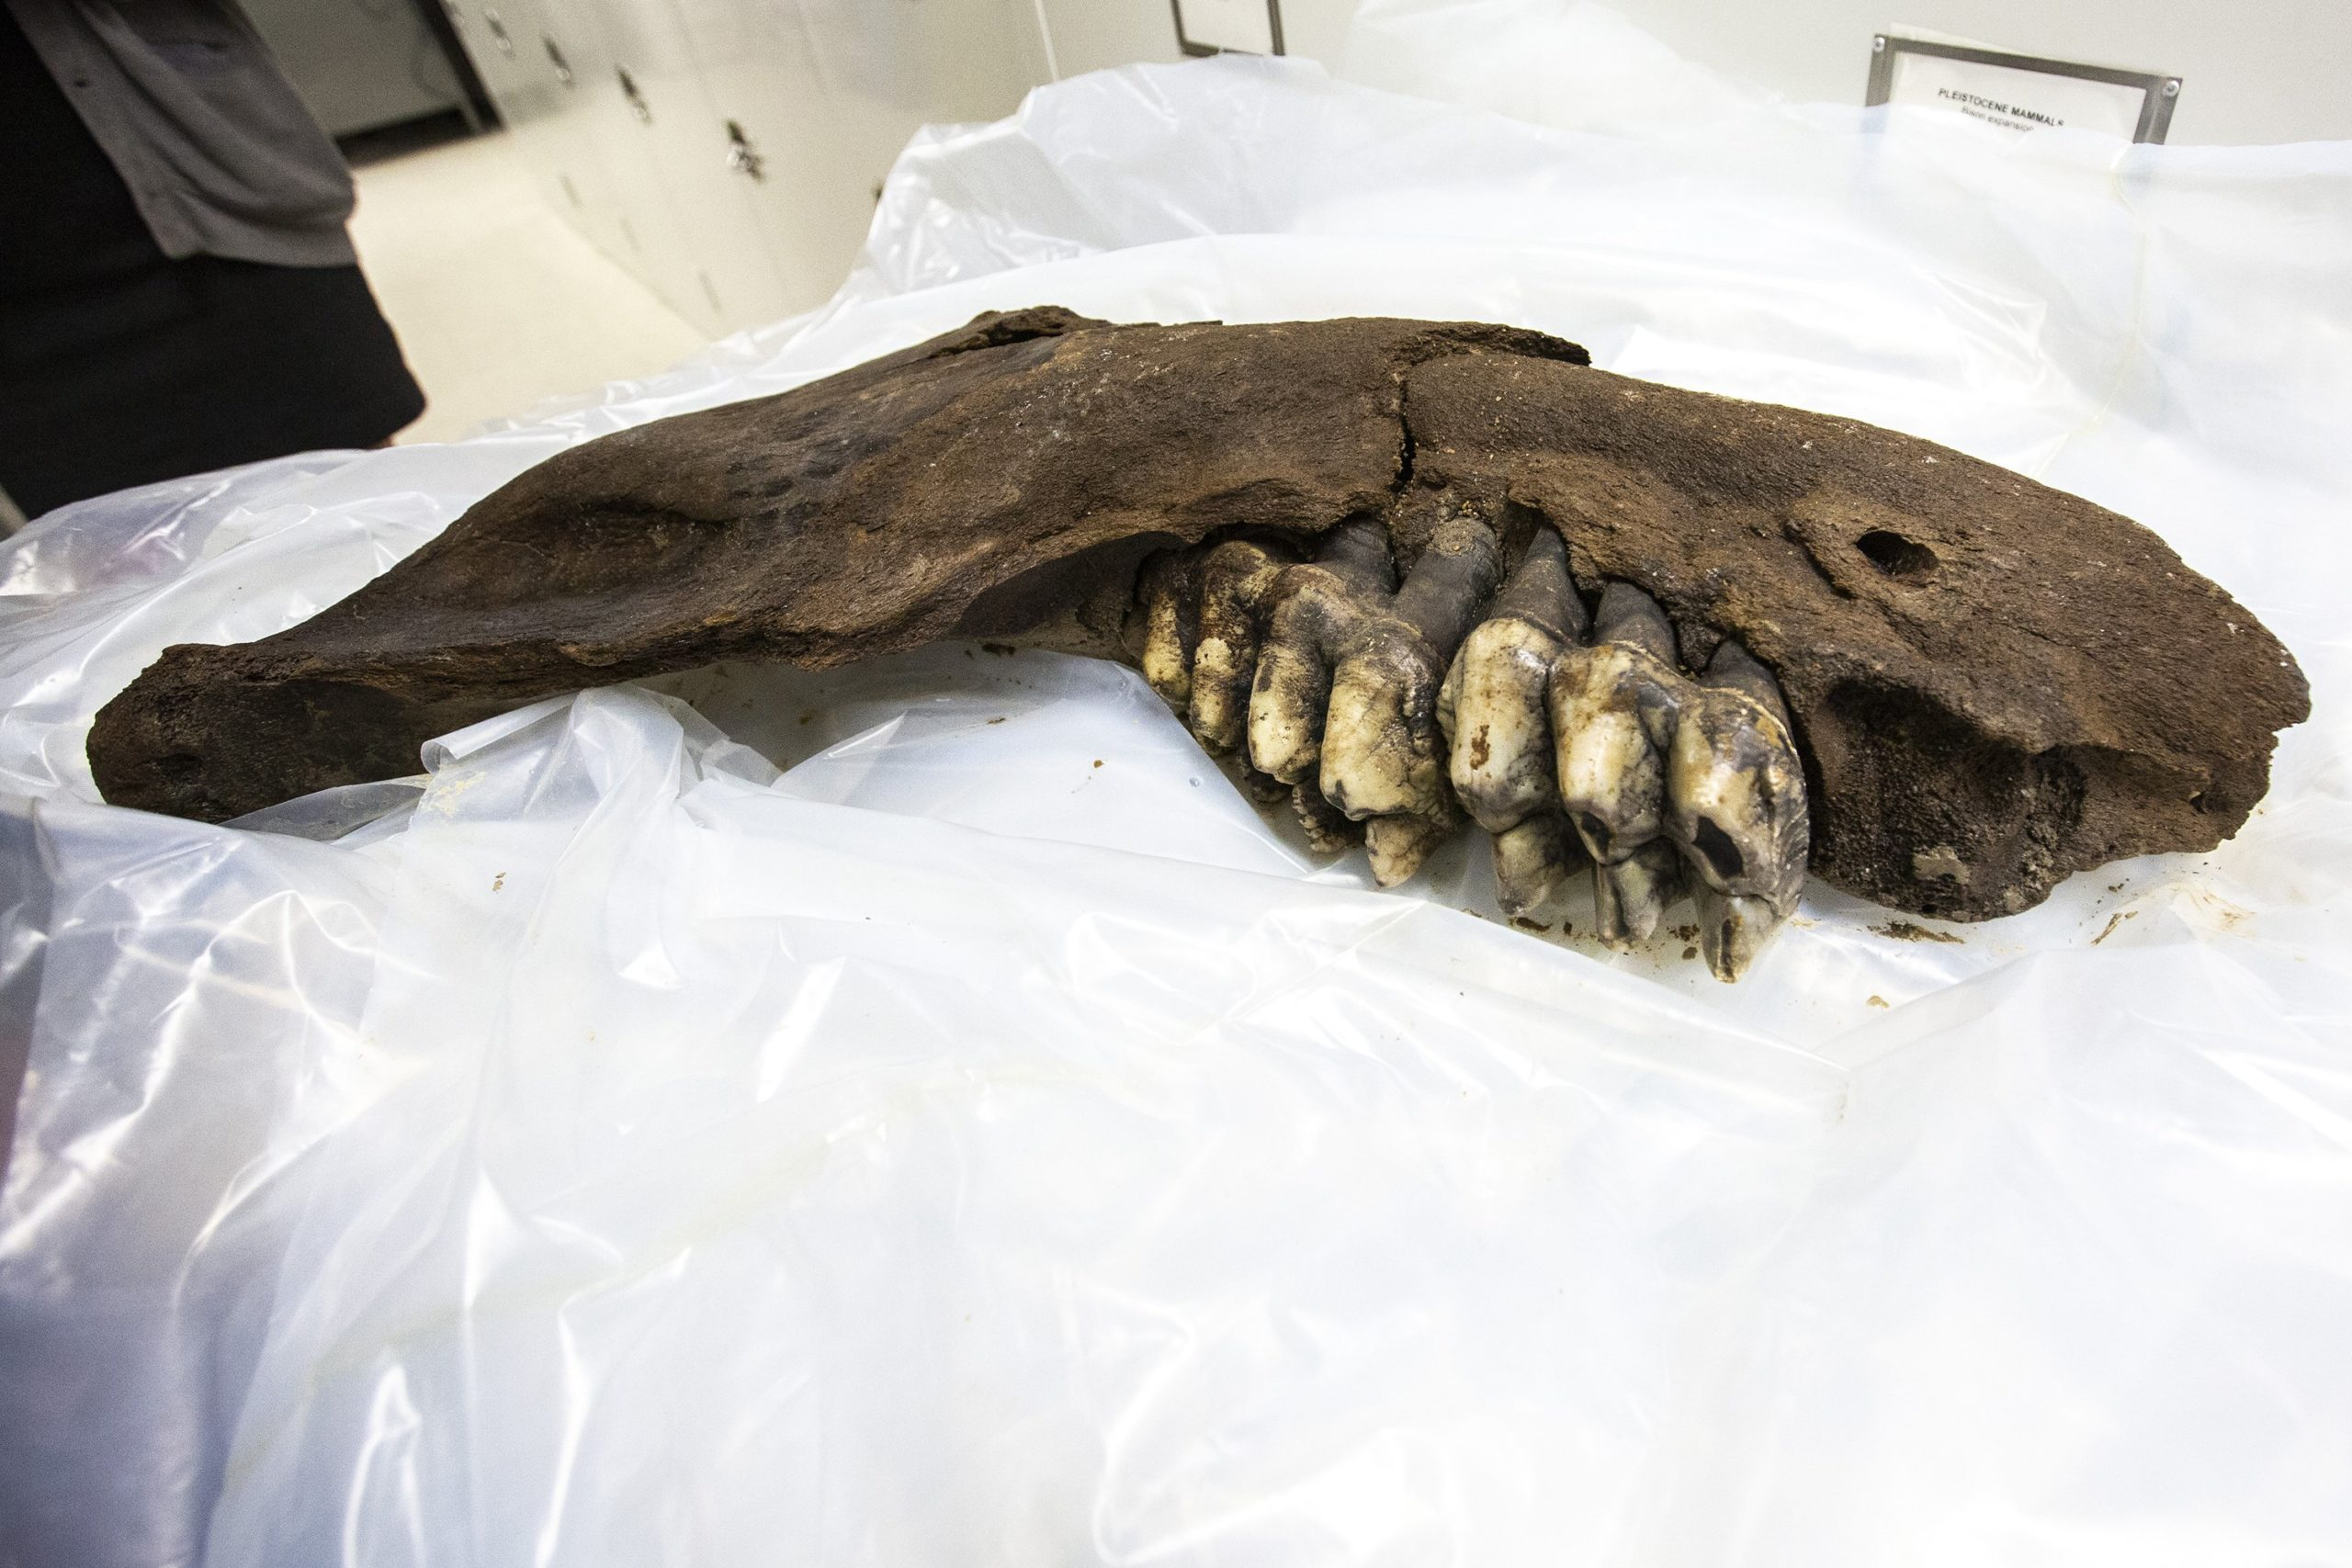 A Lowa adolescent hunting for Arrowheads might discover a mastodon jawbone, 30,000 years old instead.